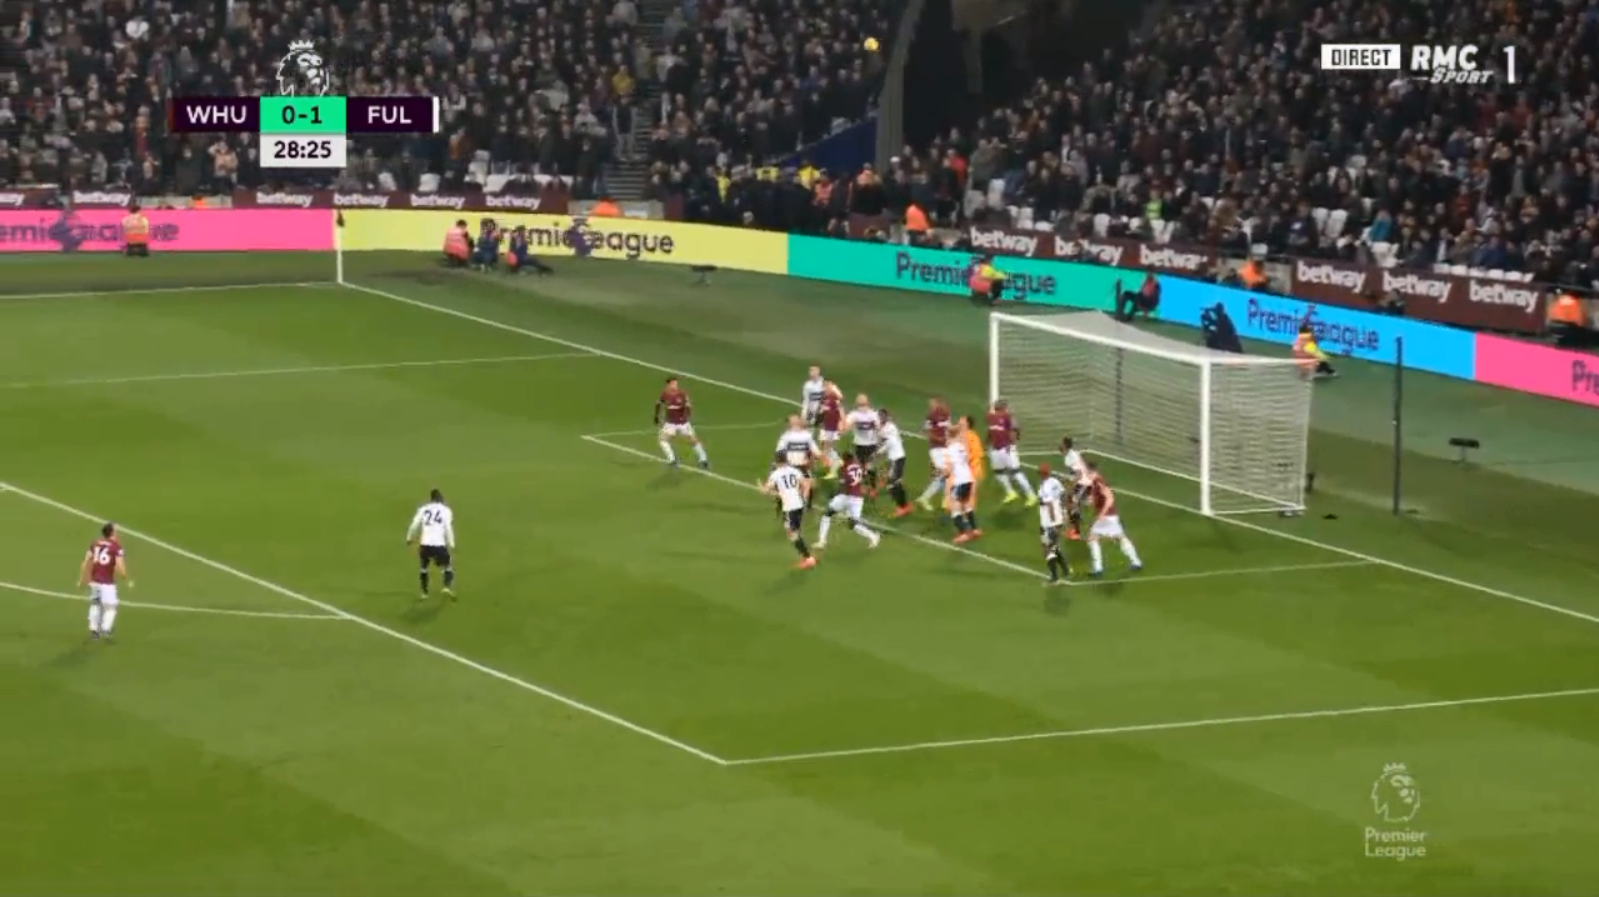 A Robert Snodgrass corner was punched skywards by Sergio Rico and caused absolute mayhem in the box